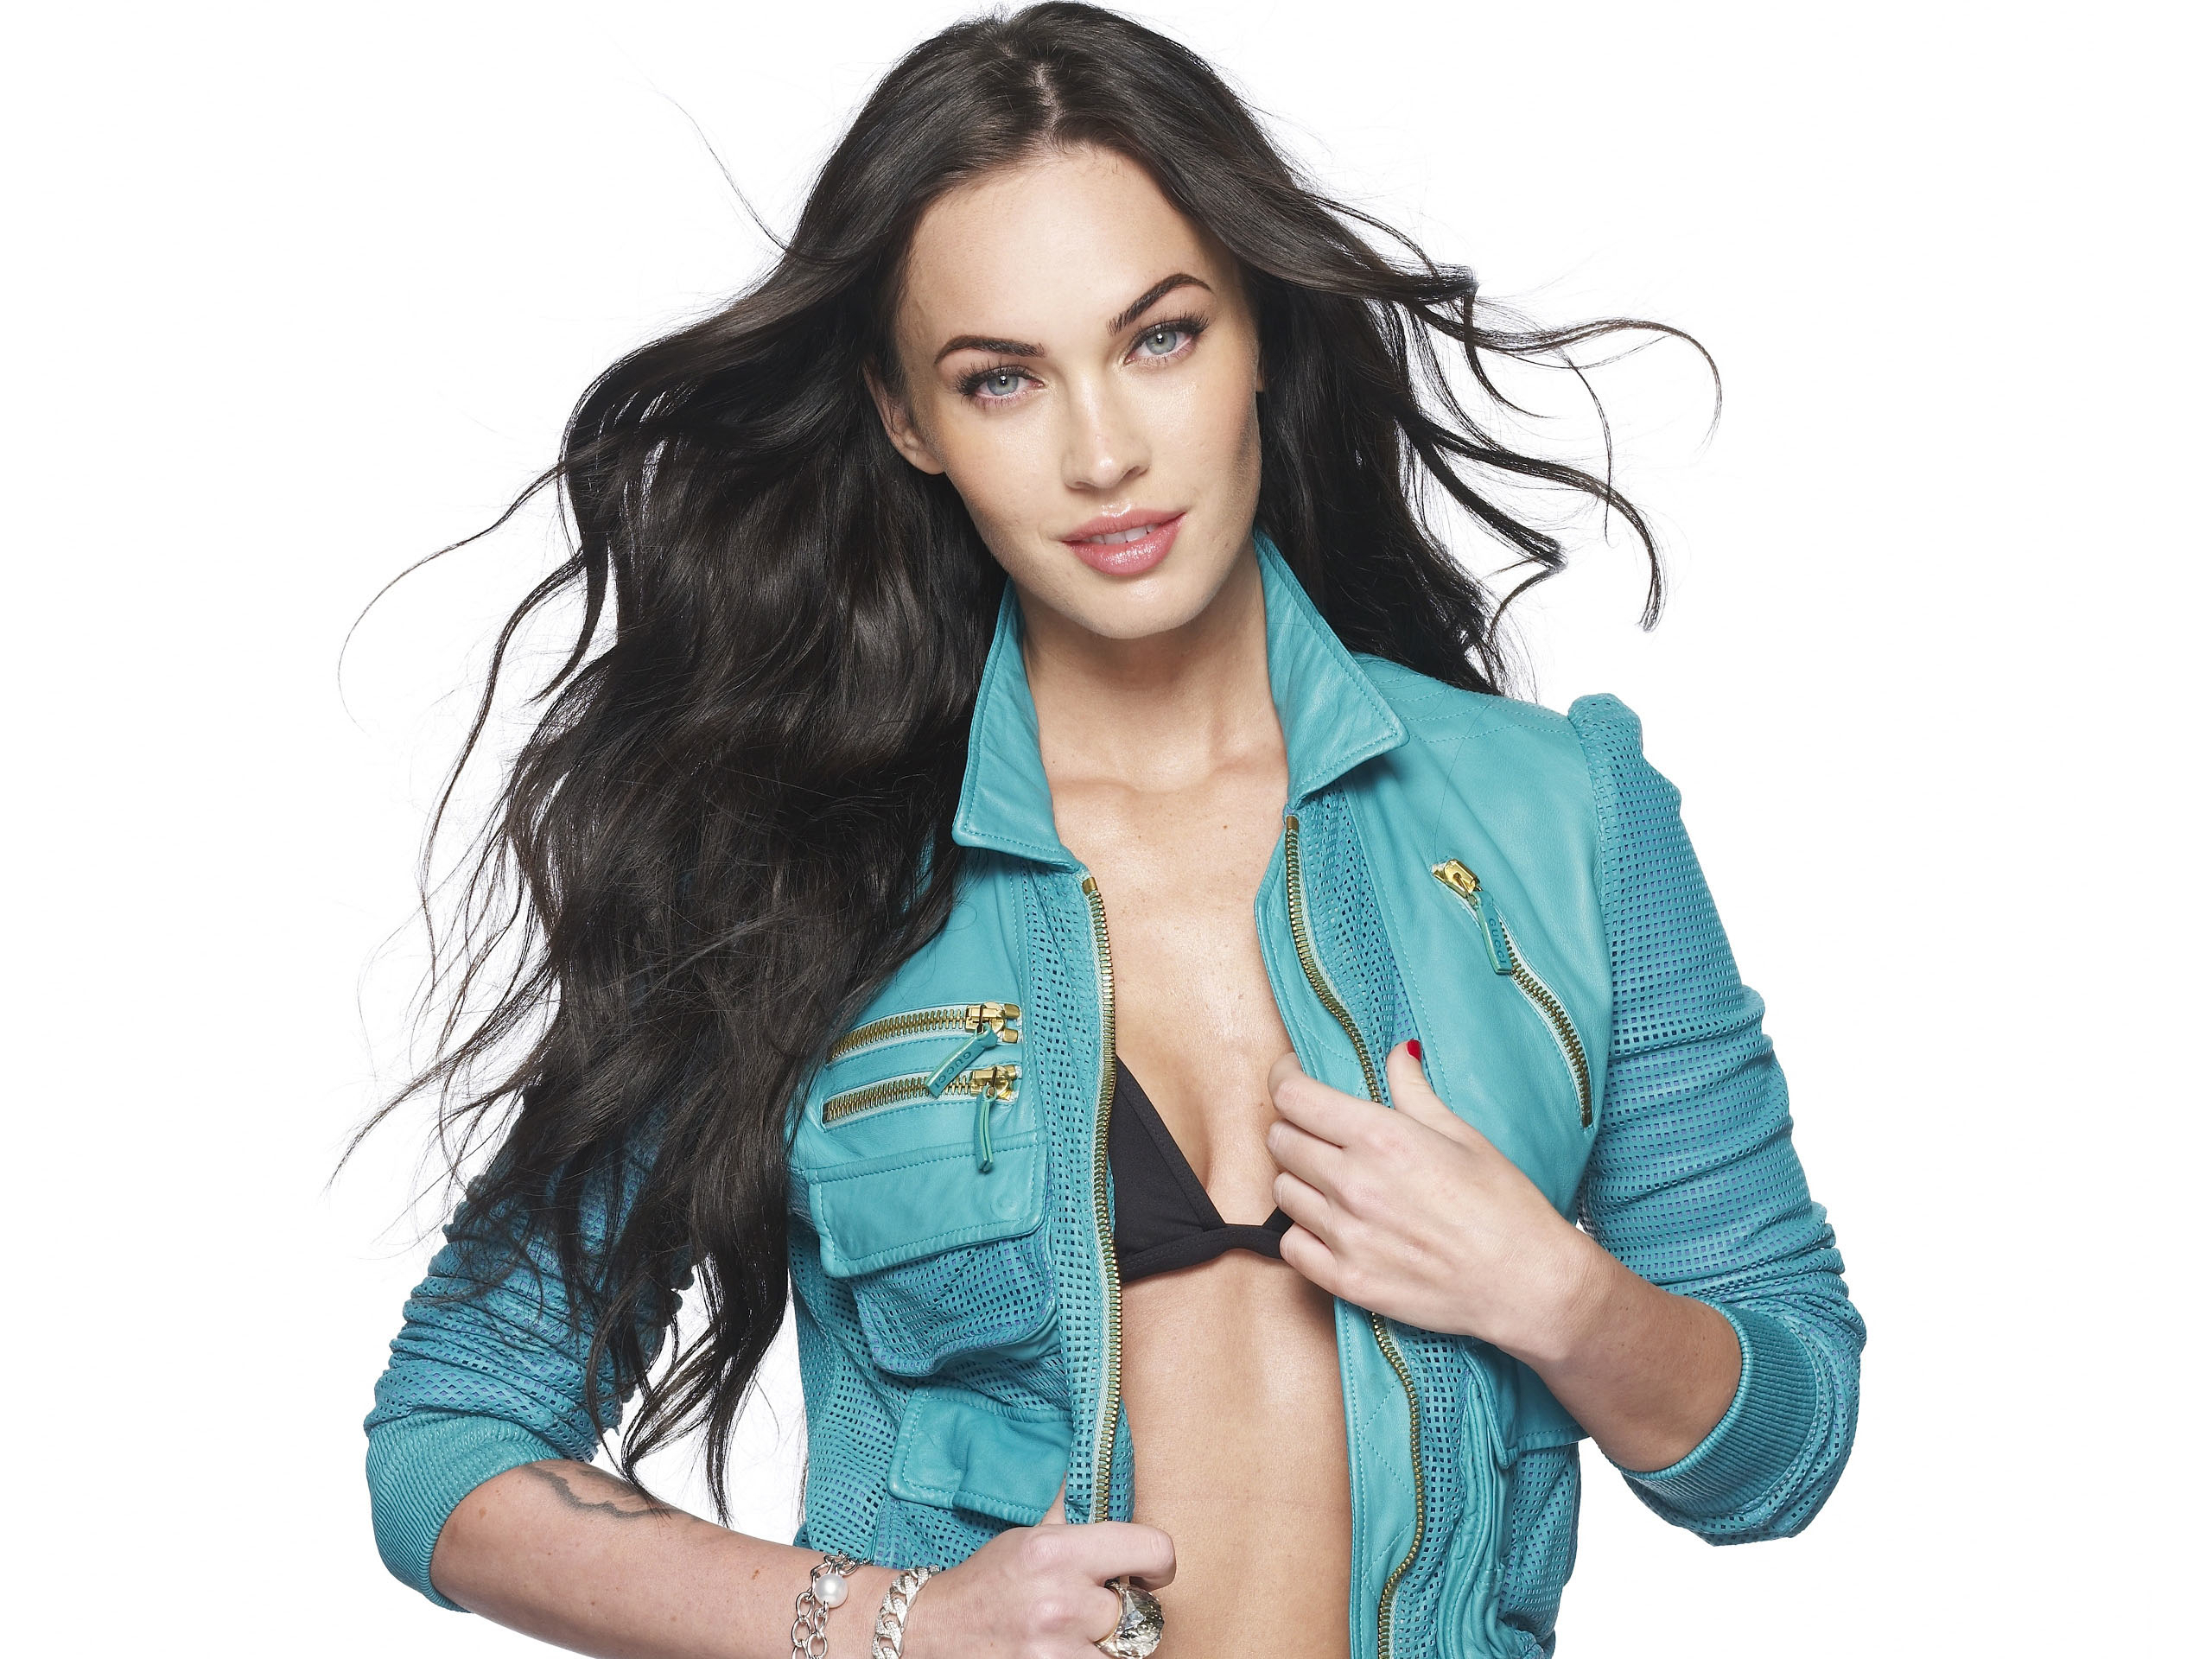 beautiful megan fox actress new hd wallpapers - all hd wallpapers